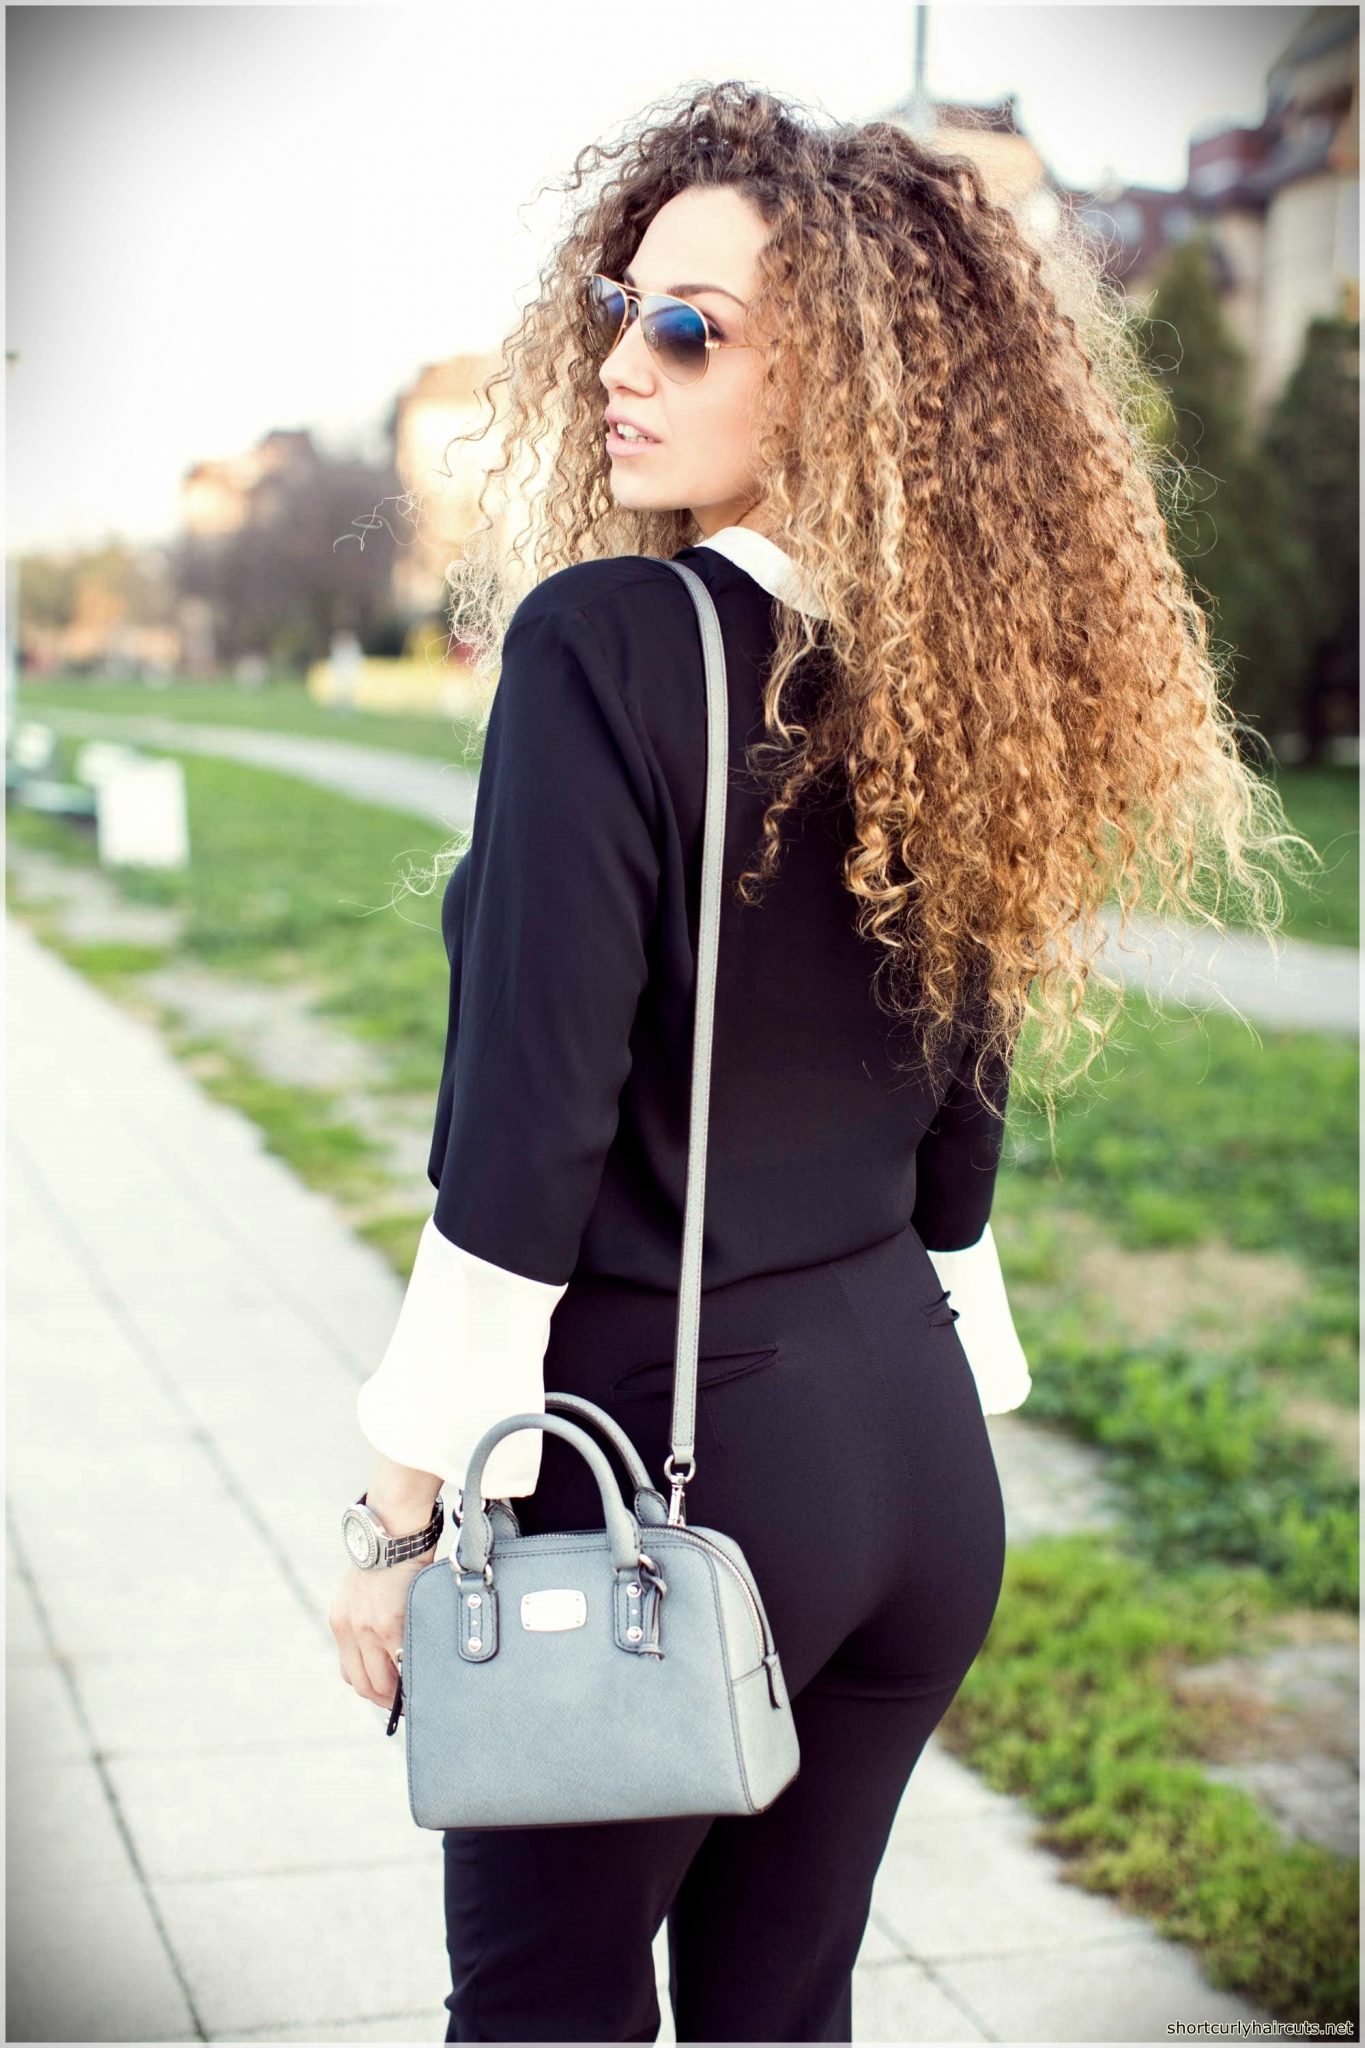 Suggestions of Short Haircuts For Curly Hair - short haircuts for curly hair 4